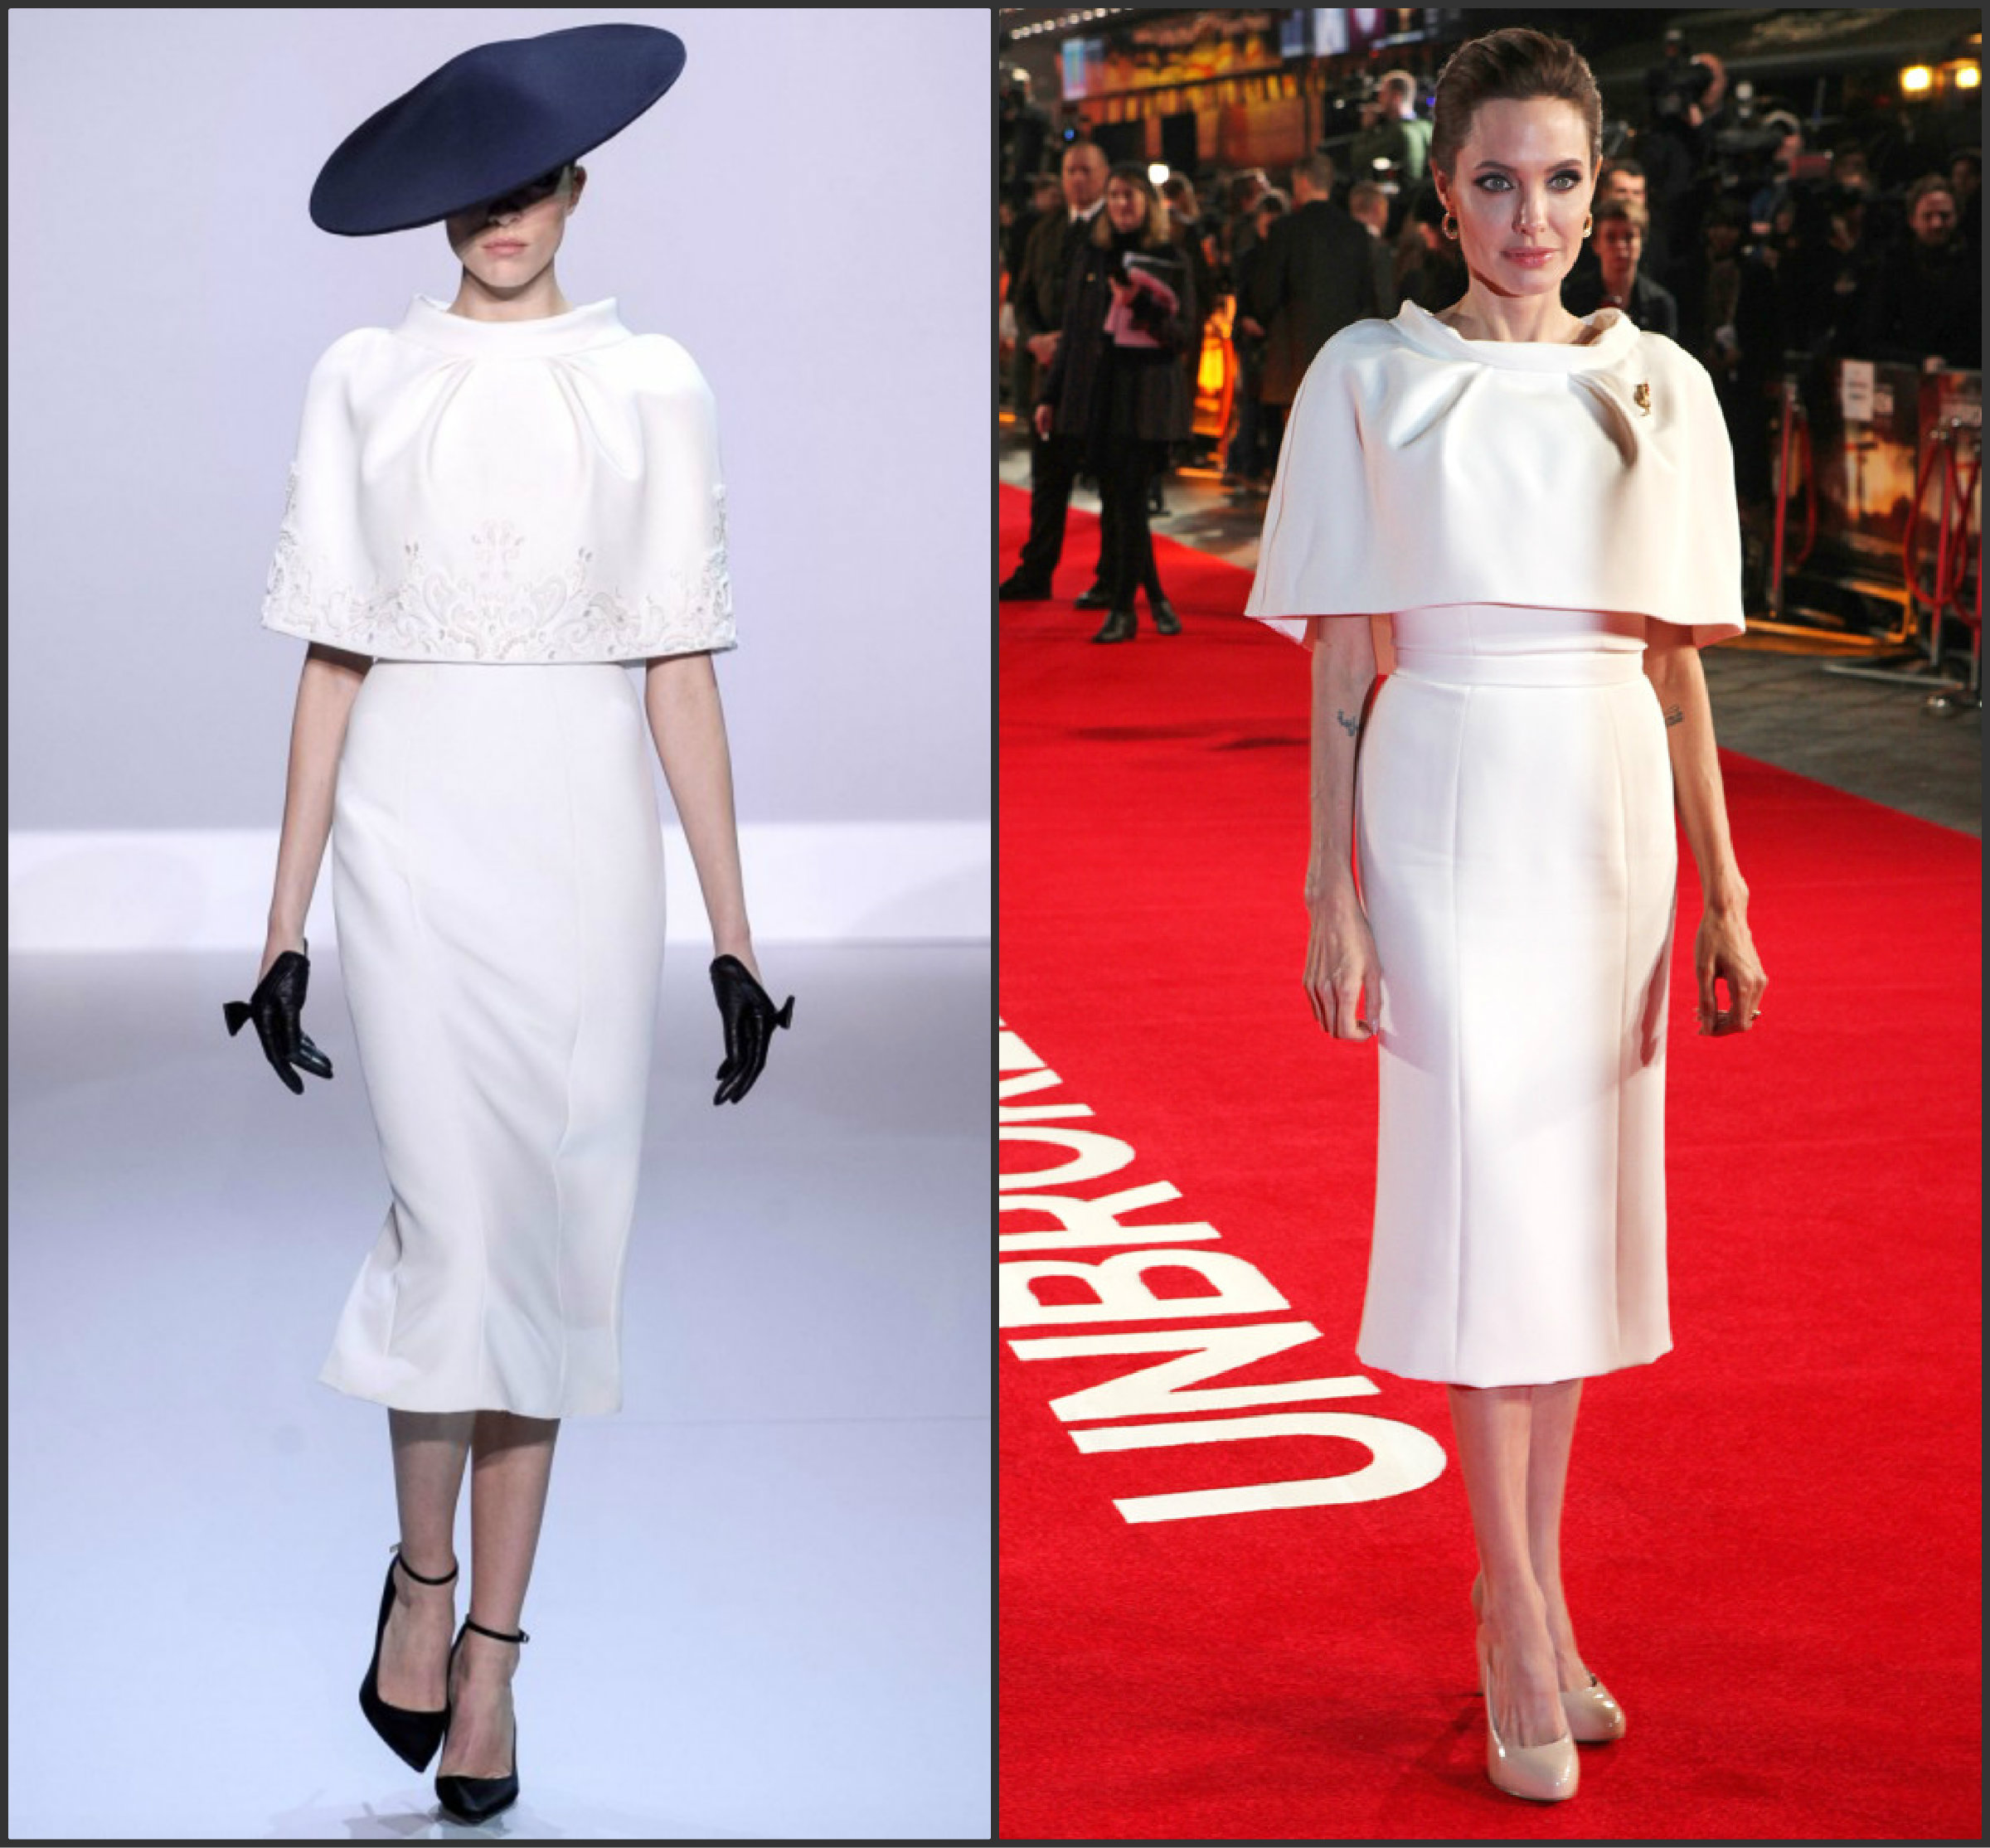 ANGELINA JOLIE WEARS RALPH & RUSSO COUTURE